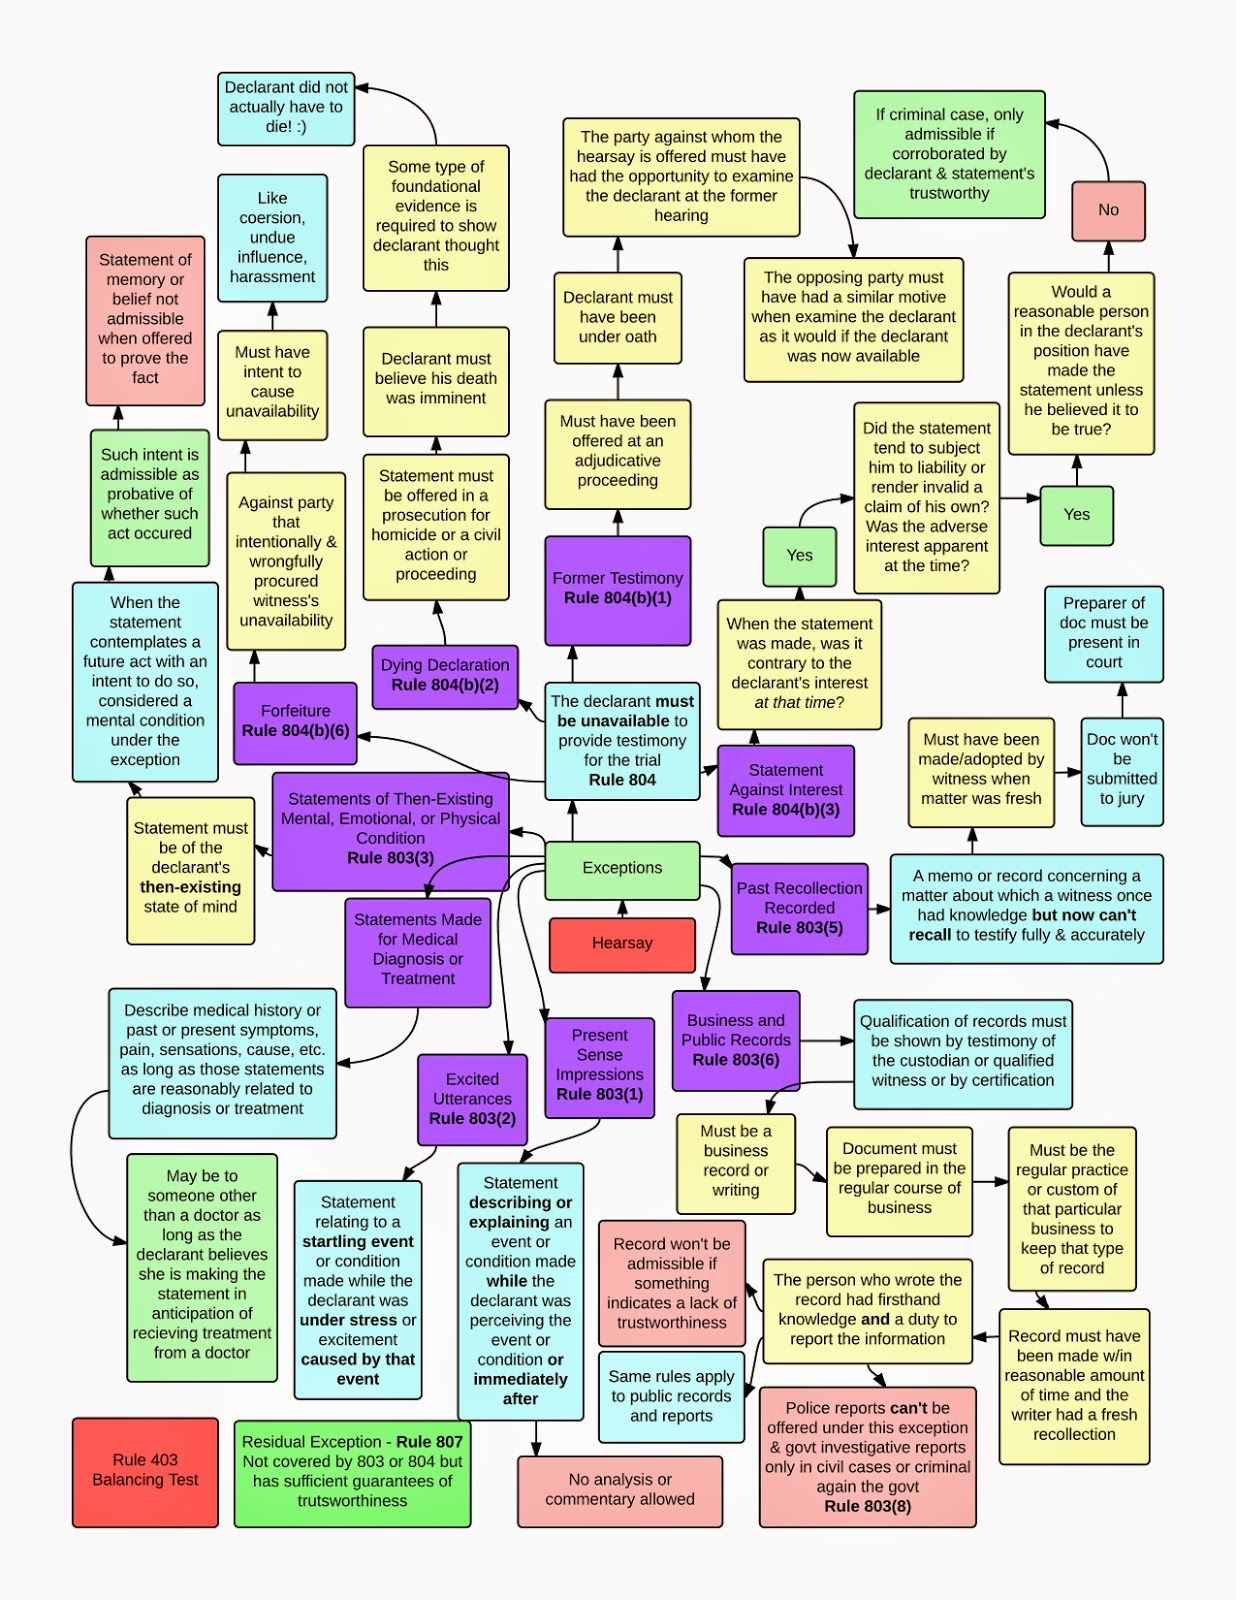 Frcp 4 flow chart google search a lawyer walked into a bar evidence flow charts for law students lawschool hearsay exceptions rules geenschuldenfo Images